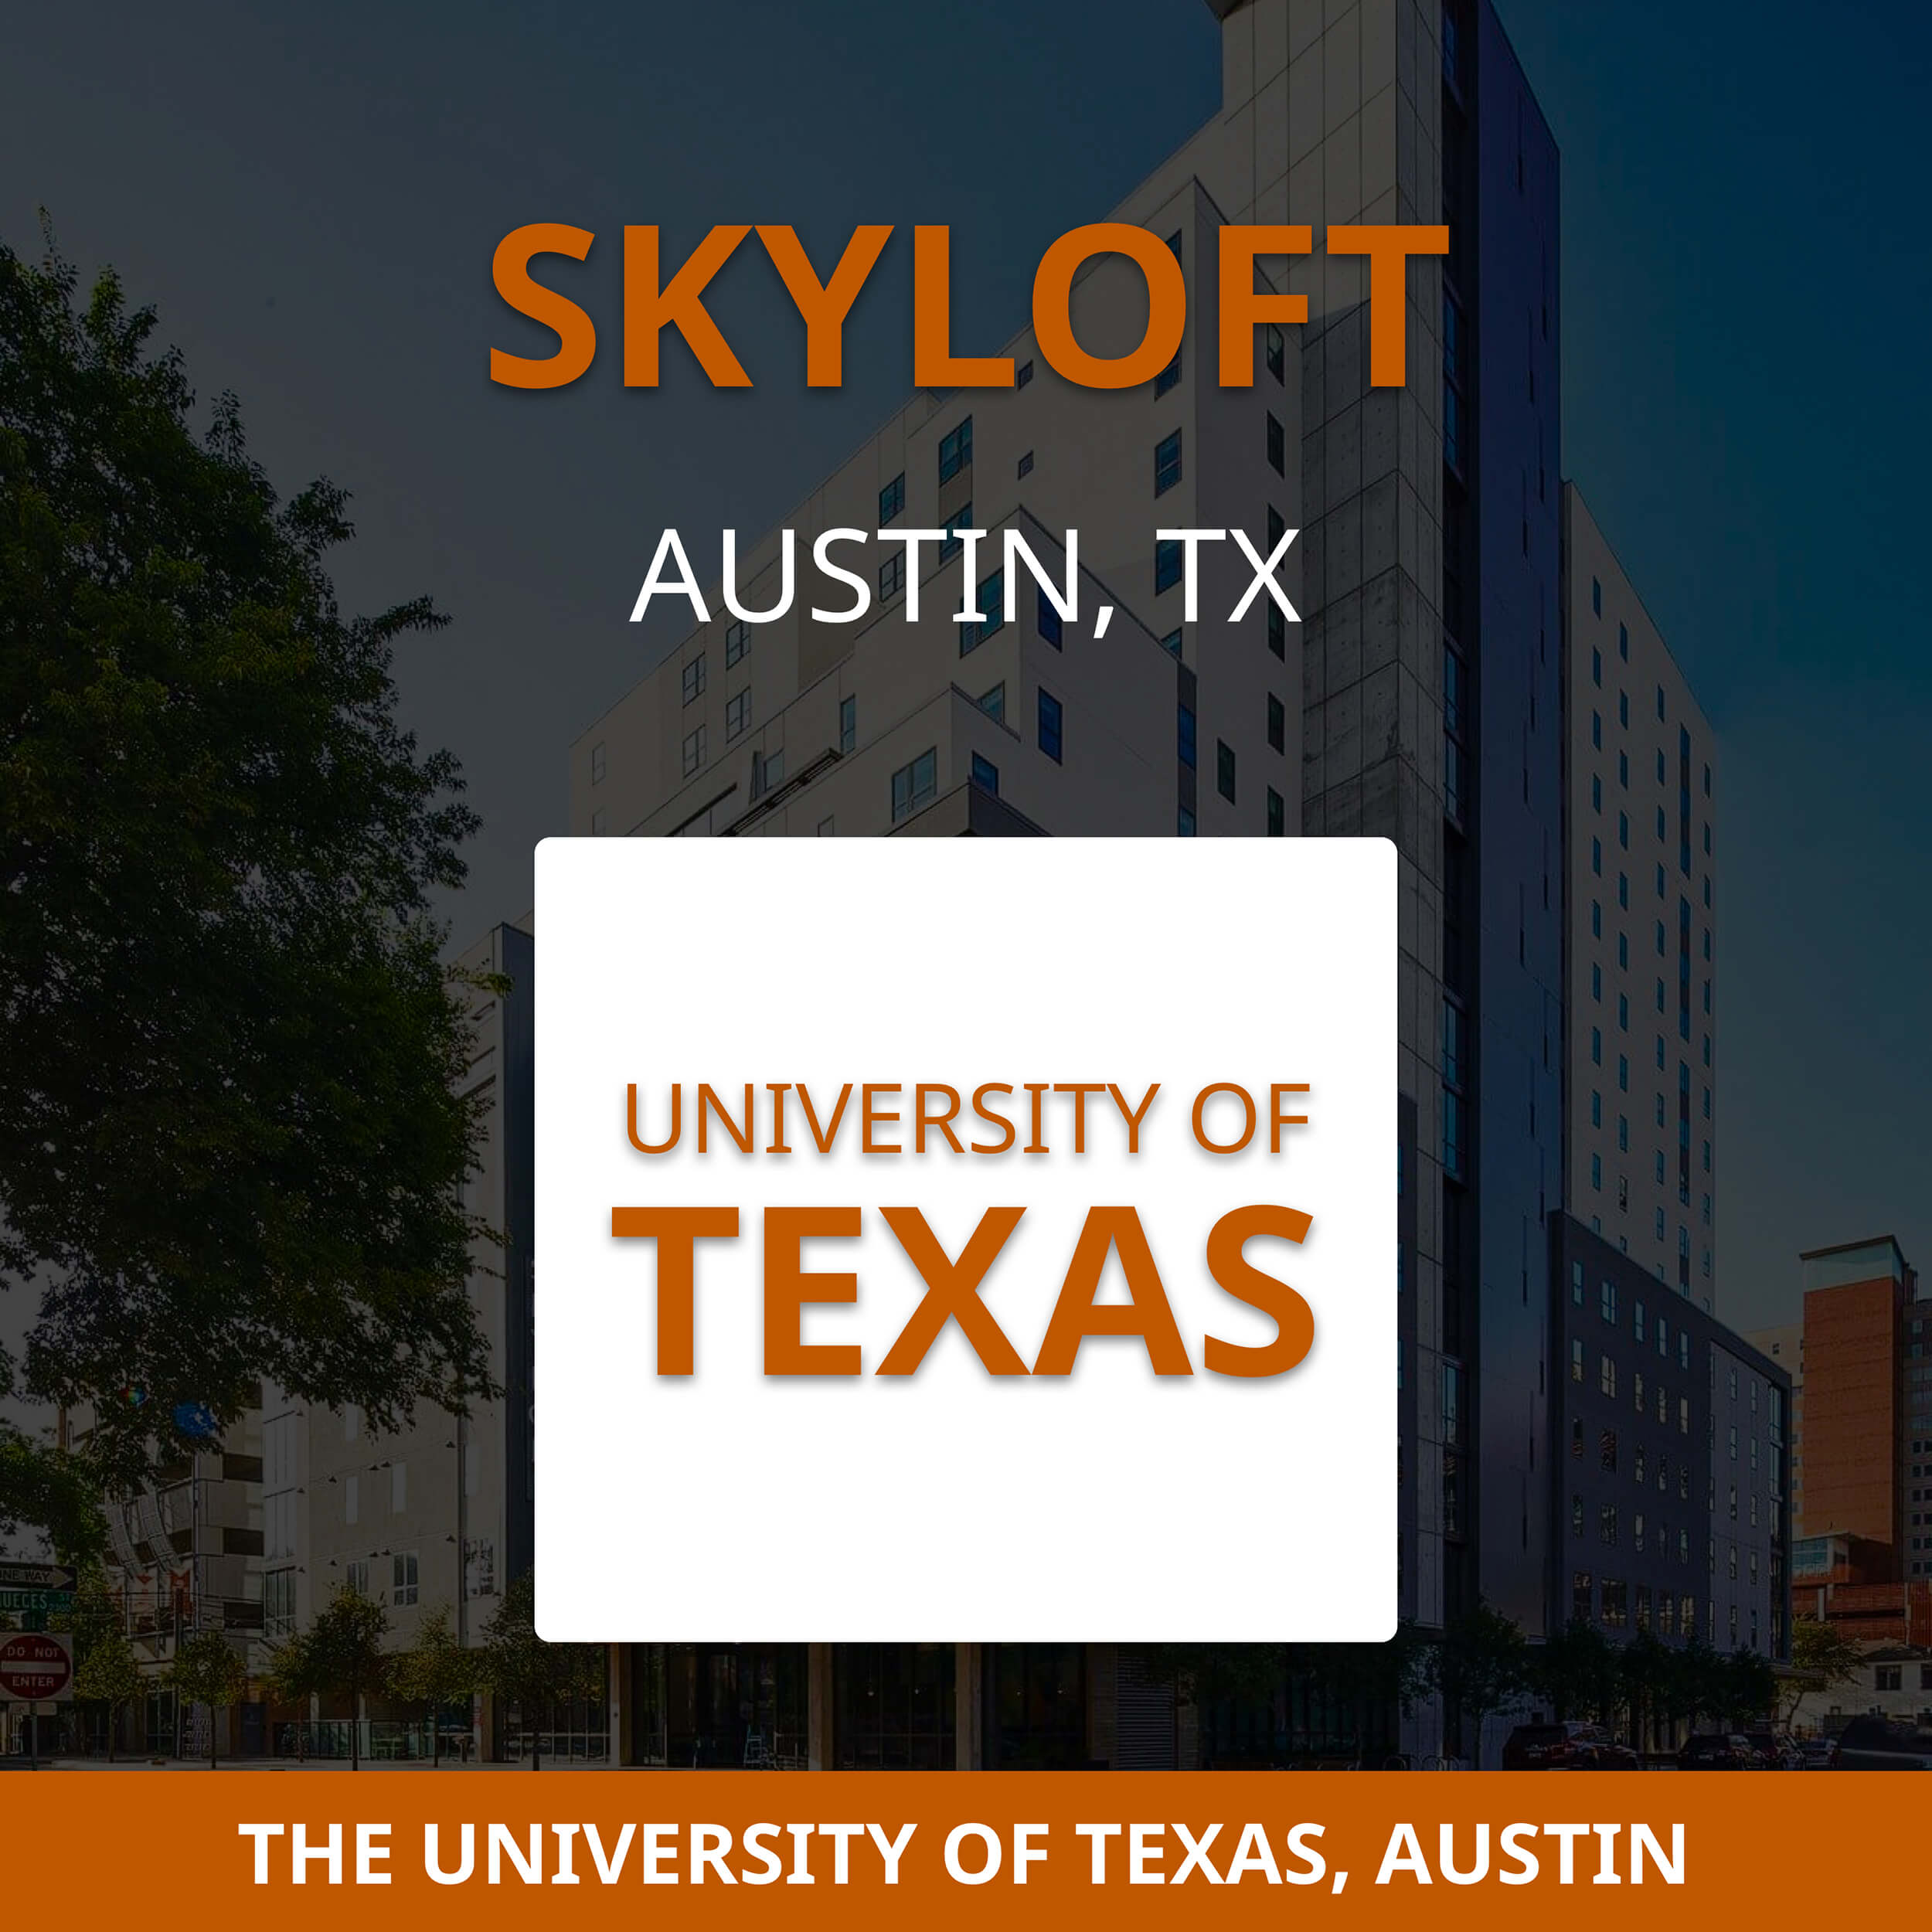 Skyloft-Student-Housing-Apartments-Texas-University Copy 2